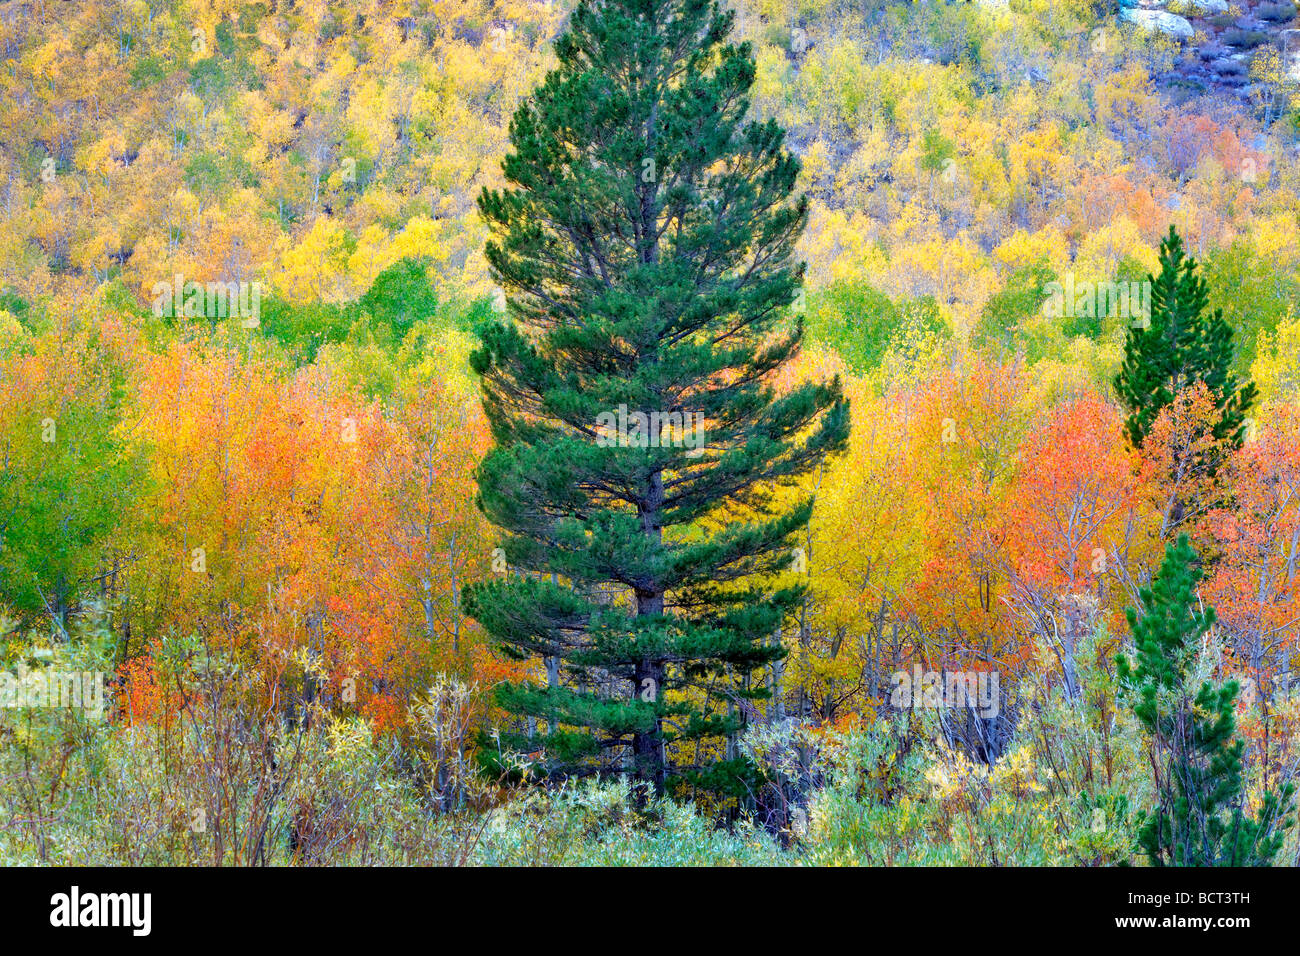 Mixed forest of aspens in fall colors and fir trees Inyo National Forest California - Stock Image